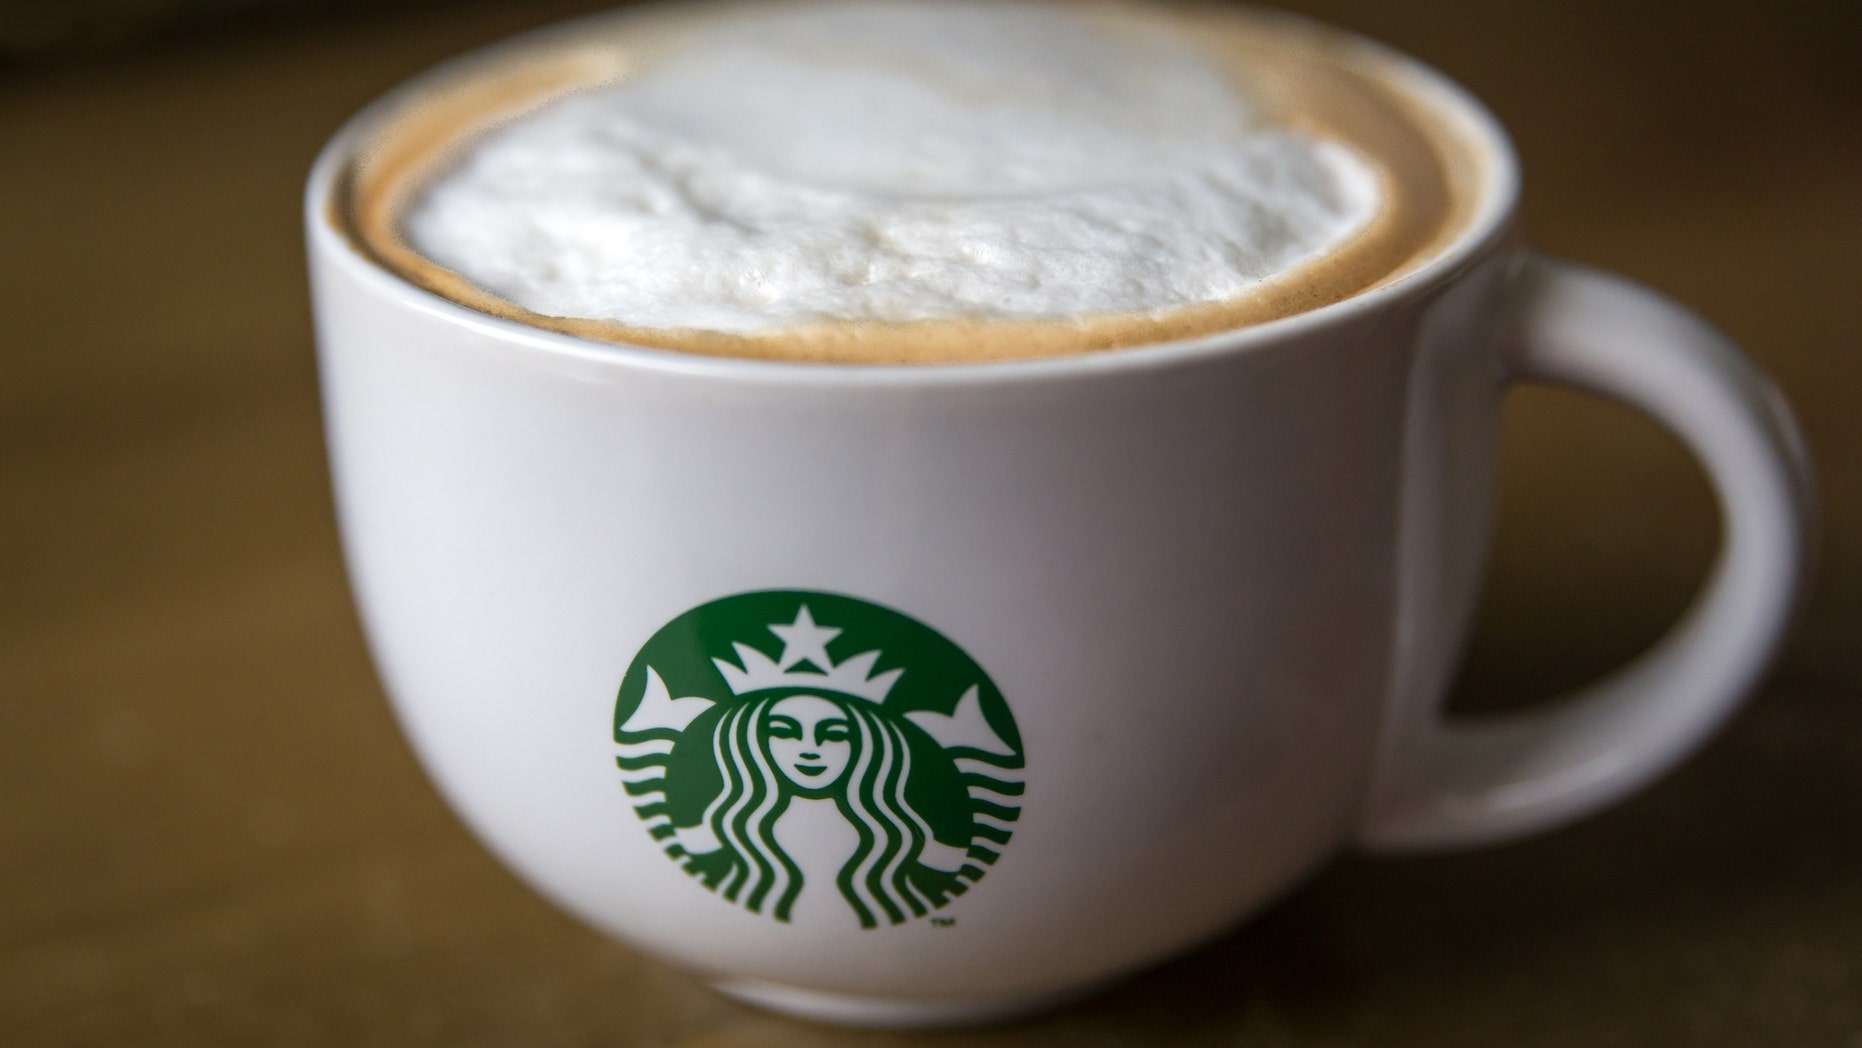 Close up of a Starbucks branded Cappucino Mug on a brown table.